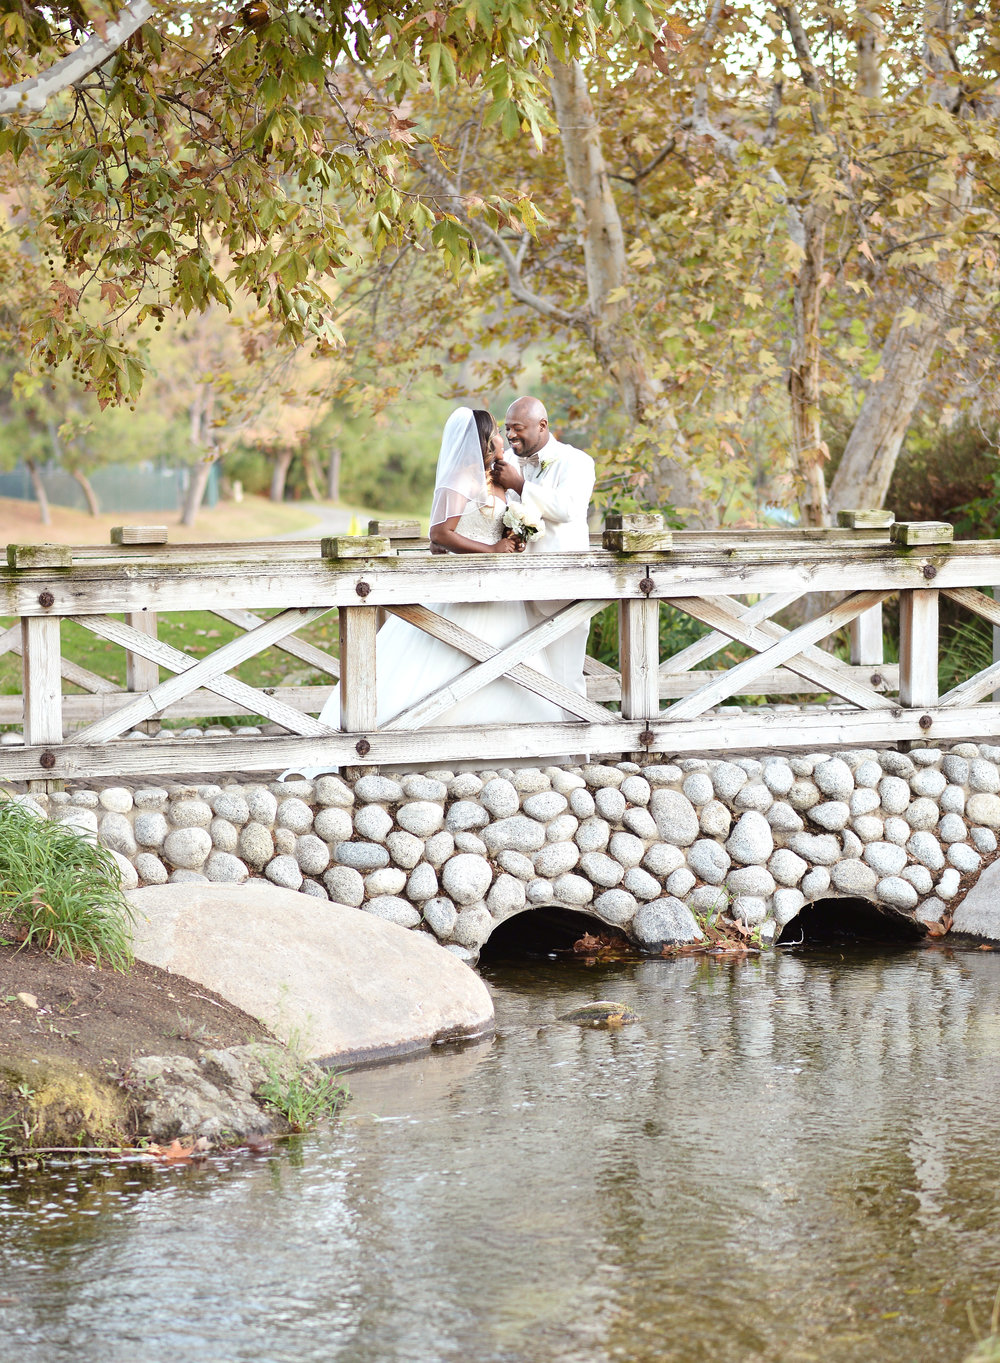 socal-wedding-consultant-best-wedding-planners-in-southern-california-coyote-hills-golf-course-wedding-planner22.JPG